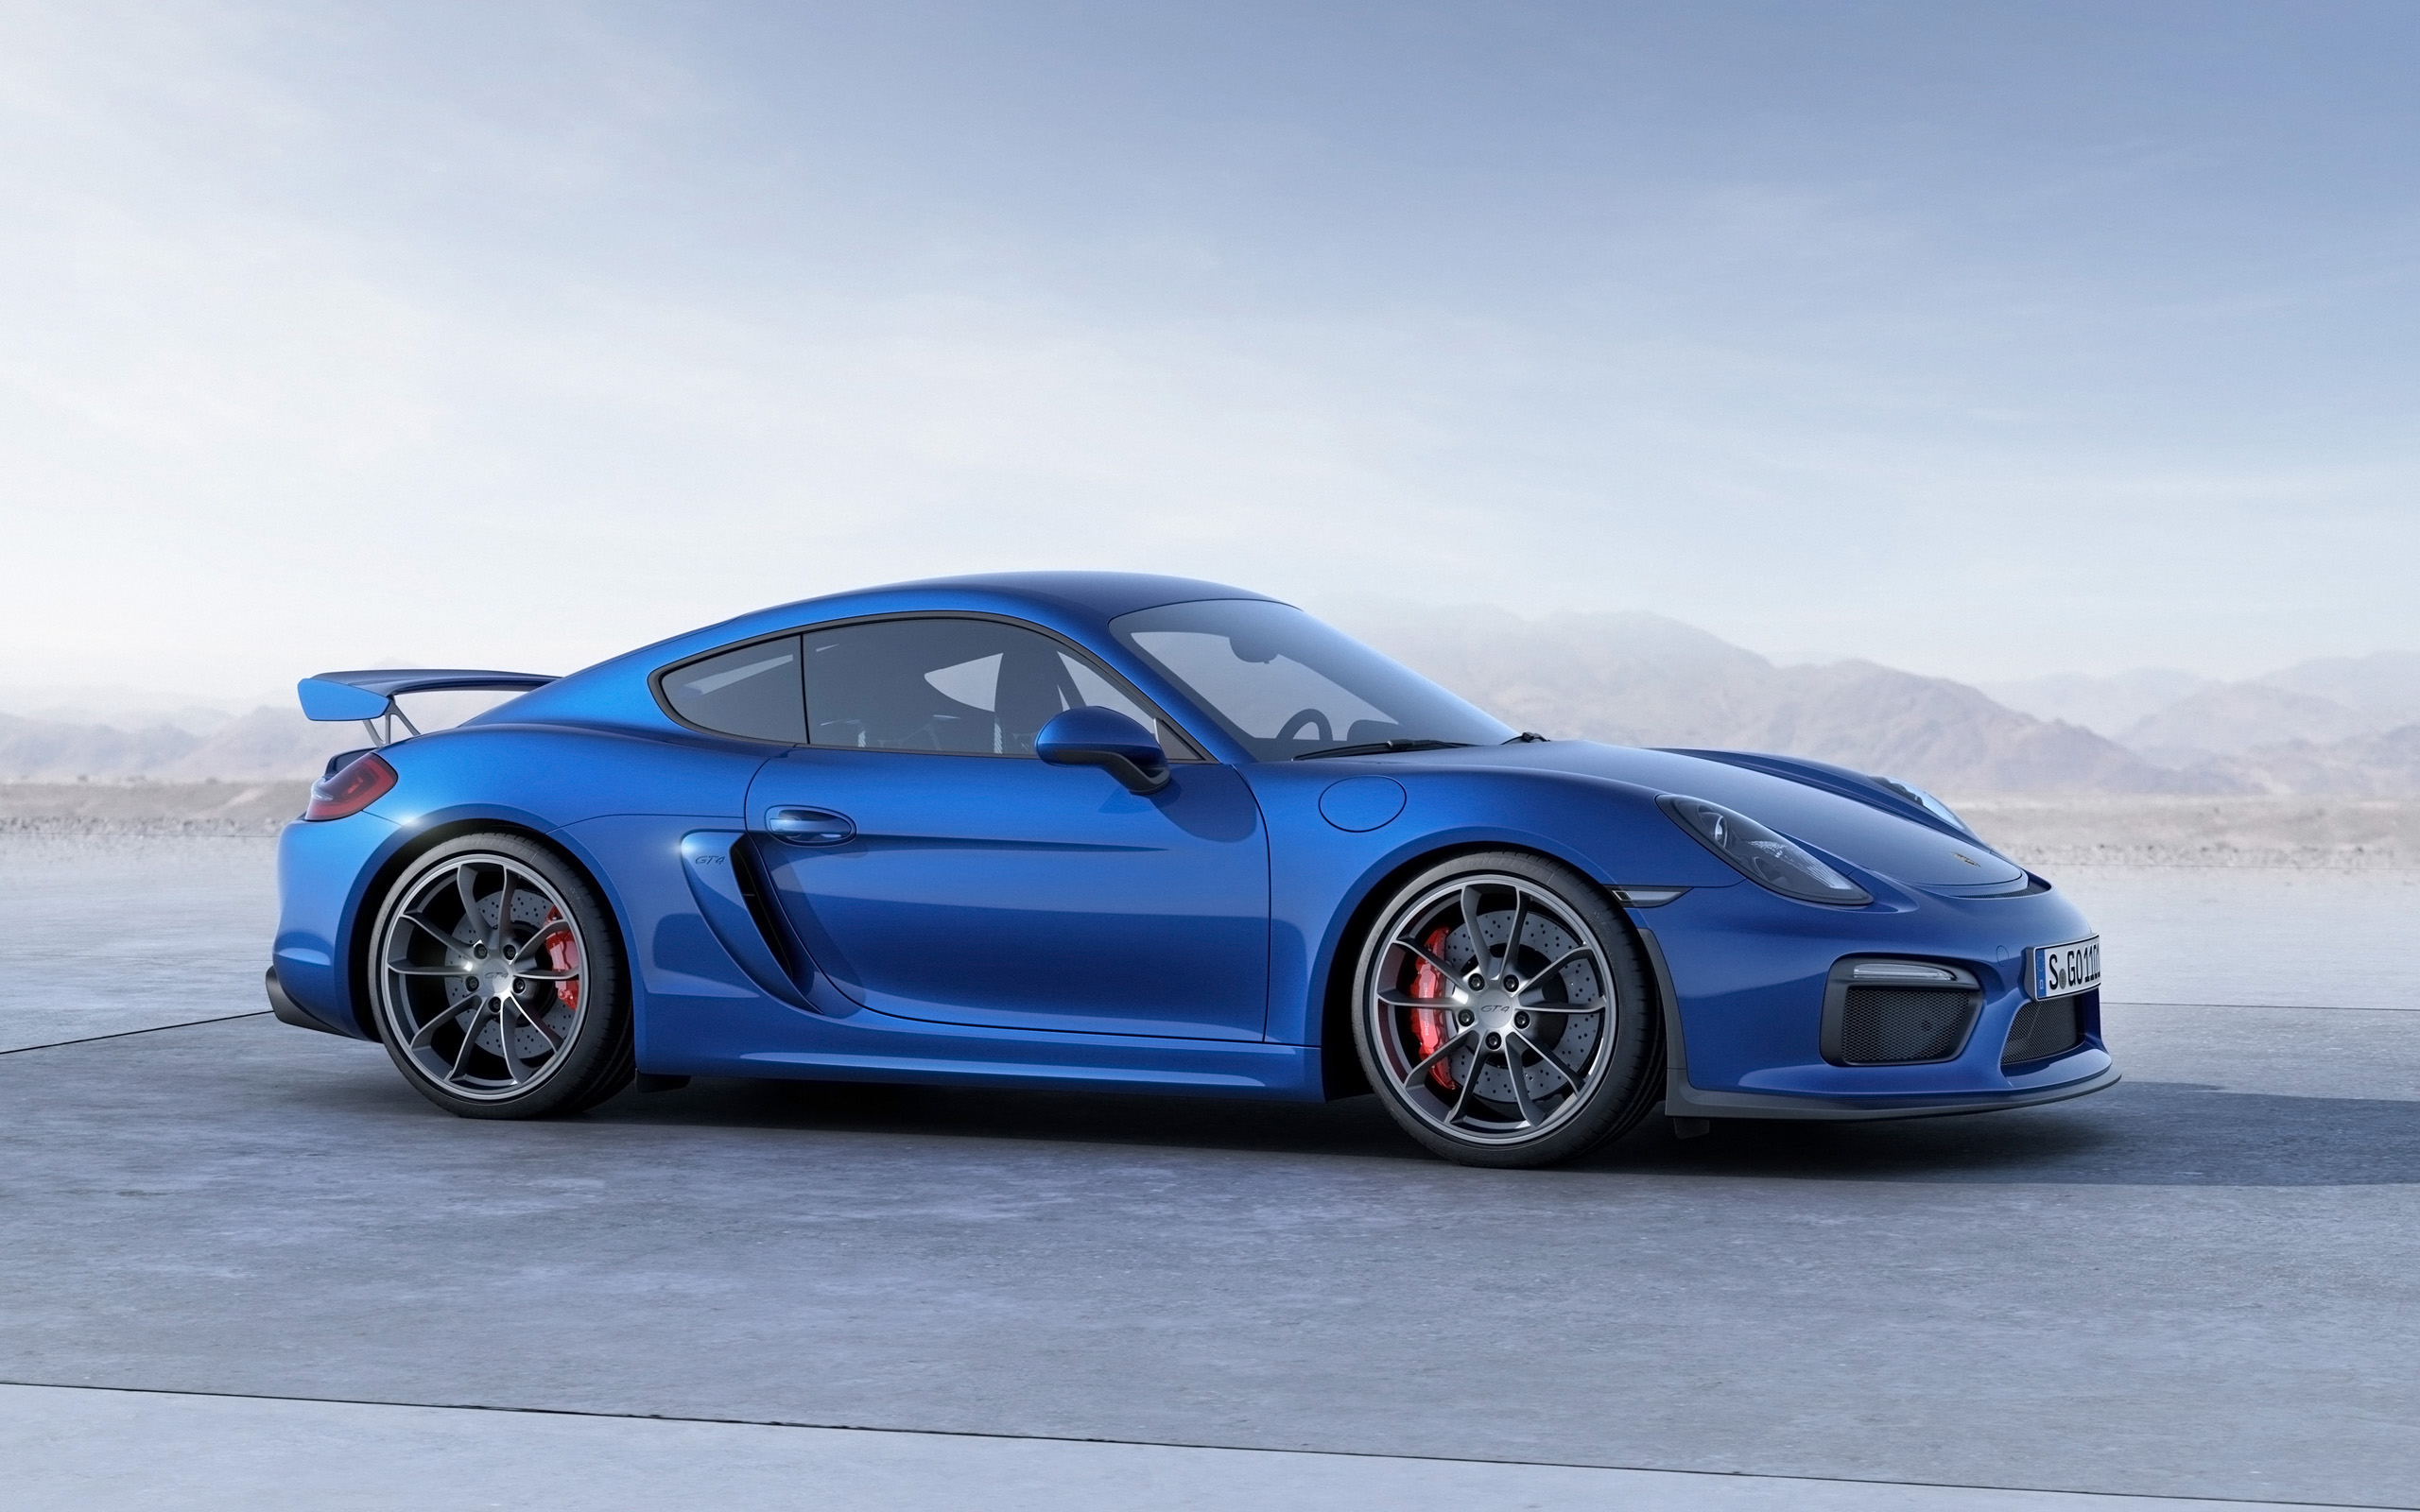 Porsche Cayman Gt4 Ultimate Guide Review Price Specs Videos More 918 Spyder Engine Diagram The To